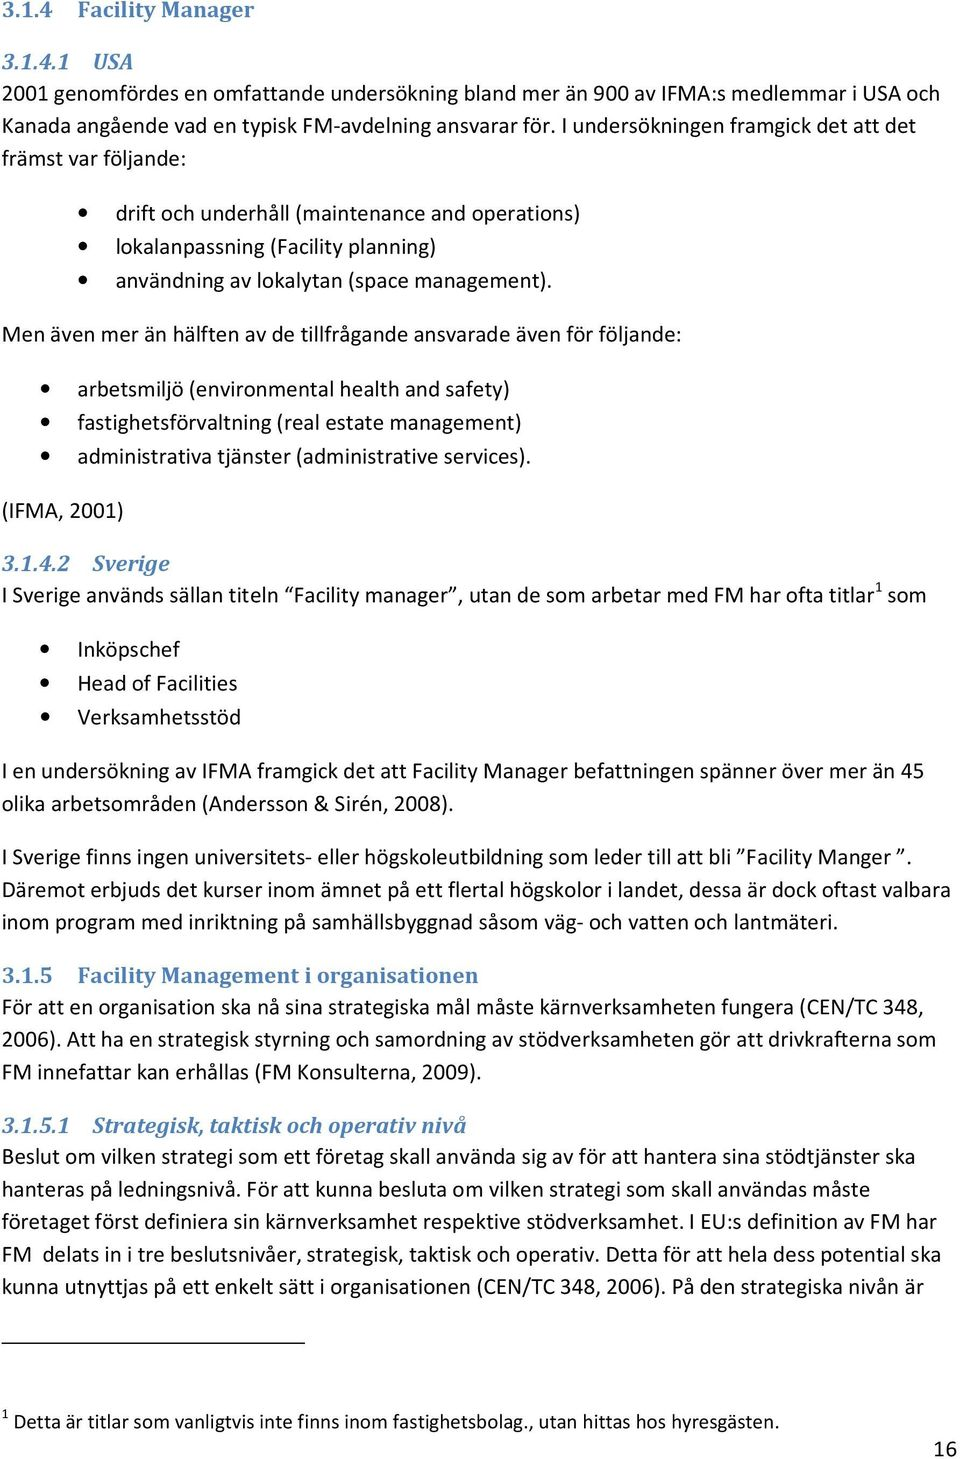 Men även mer än hälften av de tillfrågande ansvarade även för följande: arbetsmiljö (environmental health and safety) fastighetsförvaltning (real estate management) administrativa tjänster